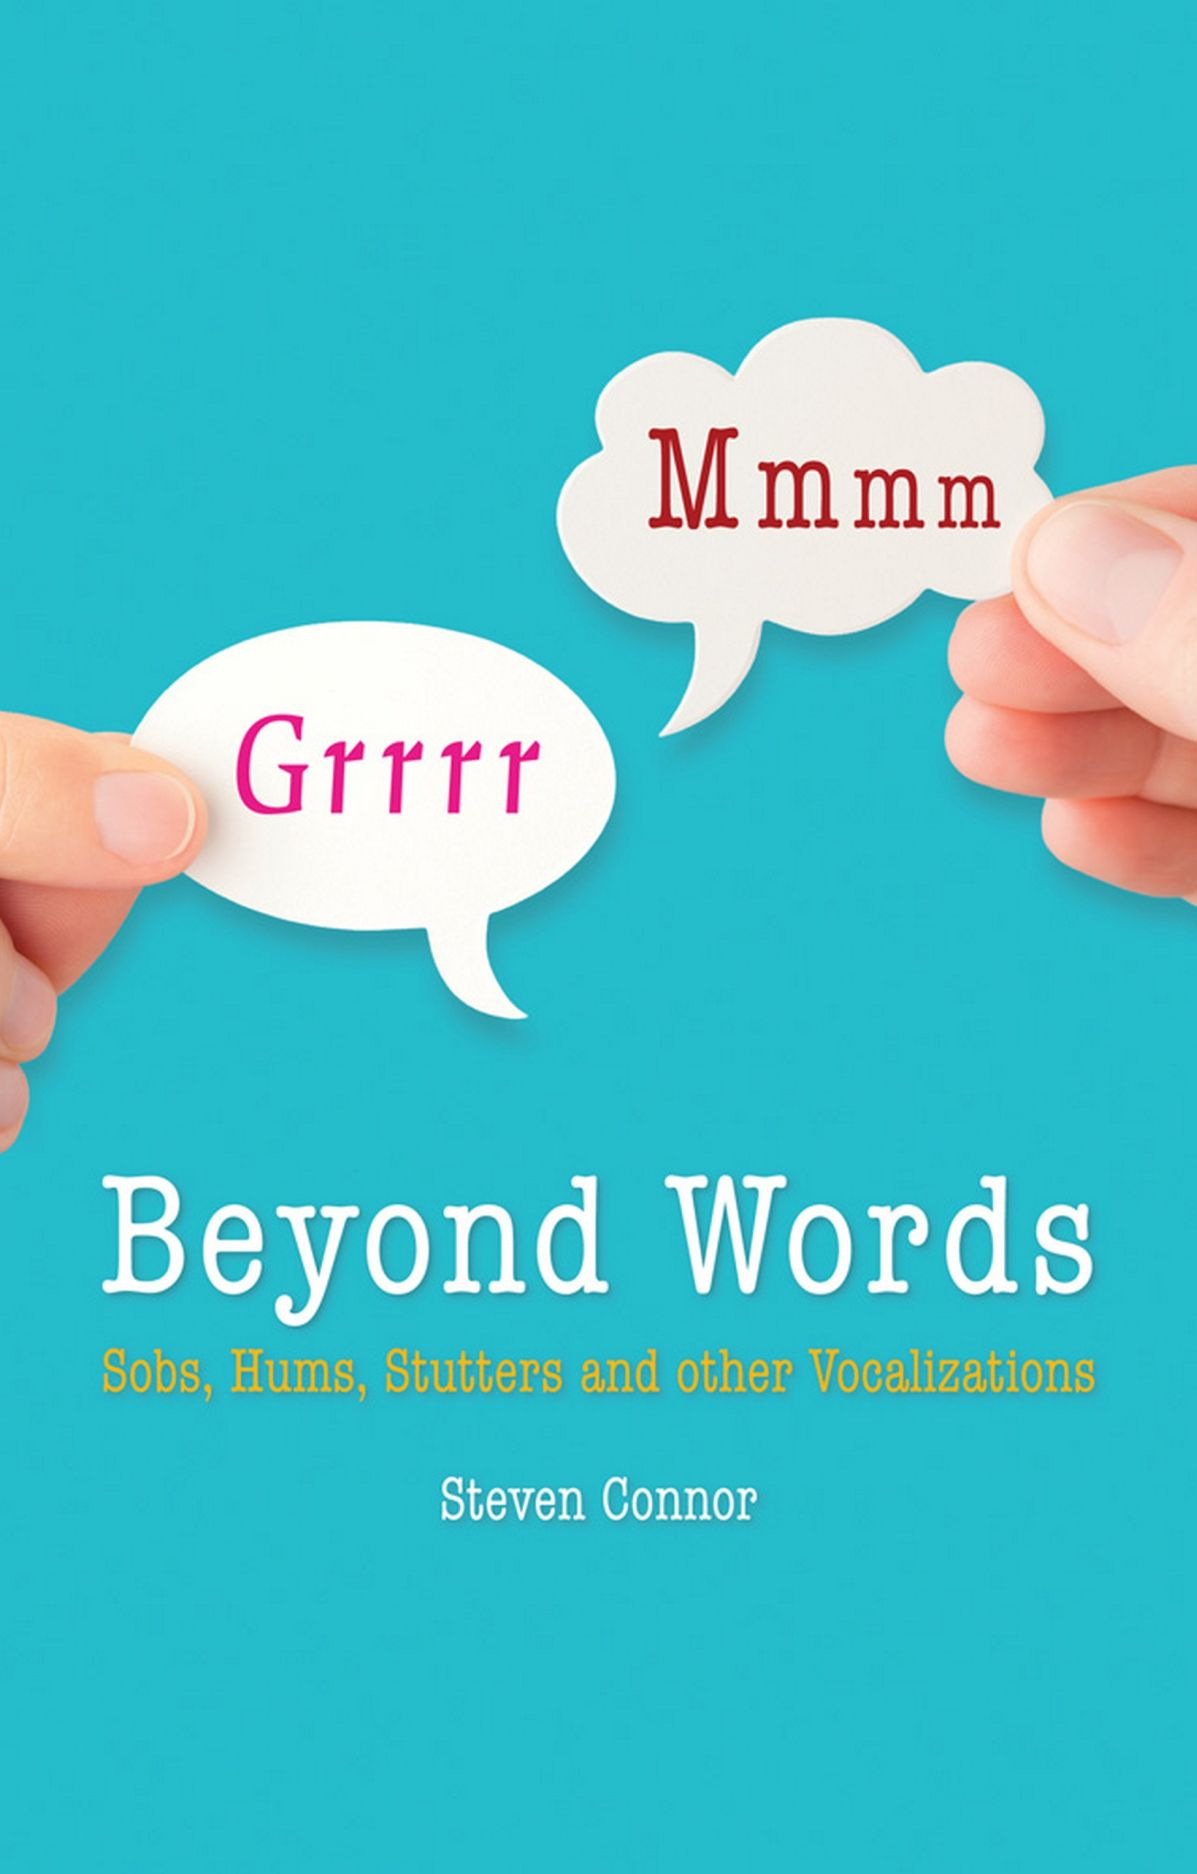 Beyond Words: Sobs, Hums, Stutters and Other Vocalizations